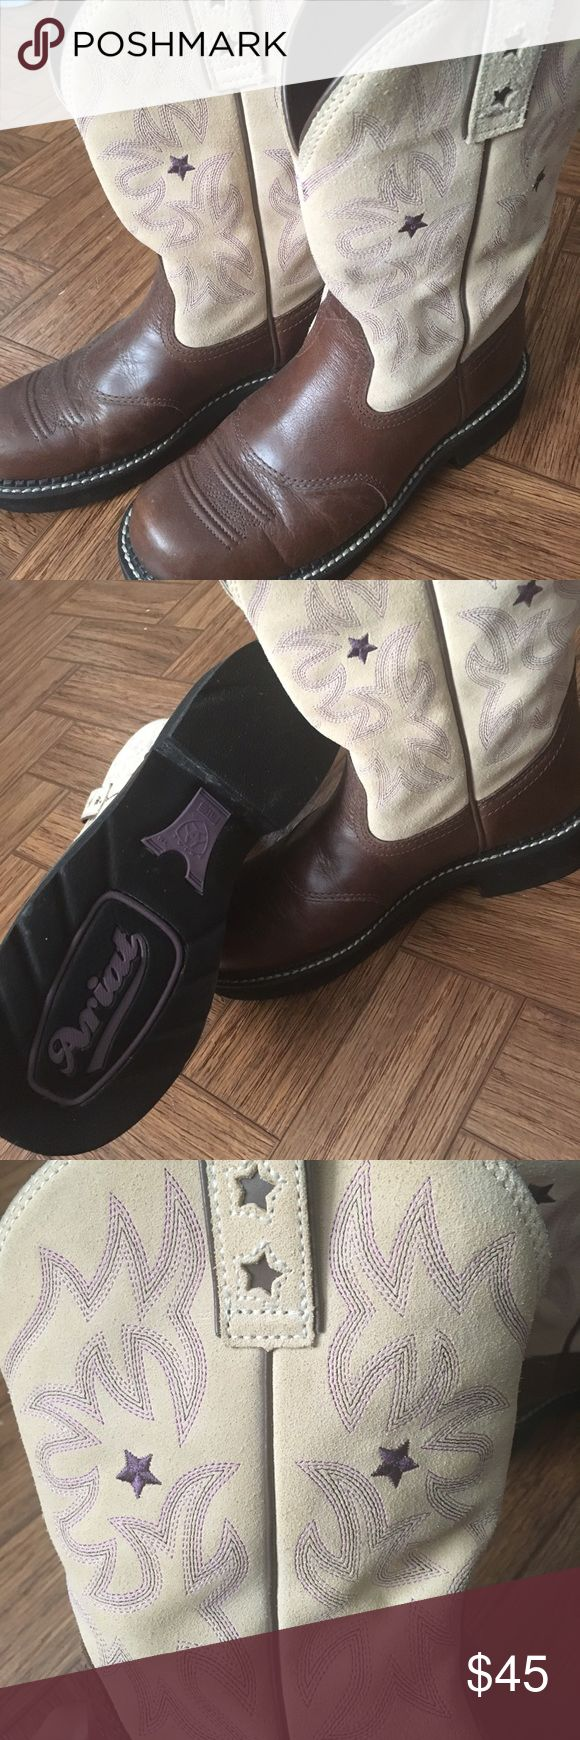 Ariat boots - tan & purple Beautiful size 8 cowboy boots! Tan with purple stitching. They are Ariat Fatbaby's. They are several years old, but only worn 4 times. Great for ranch work, or style! Open to offers. Ariat Shoes Combat & Moto Boots